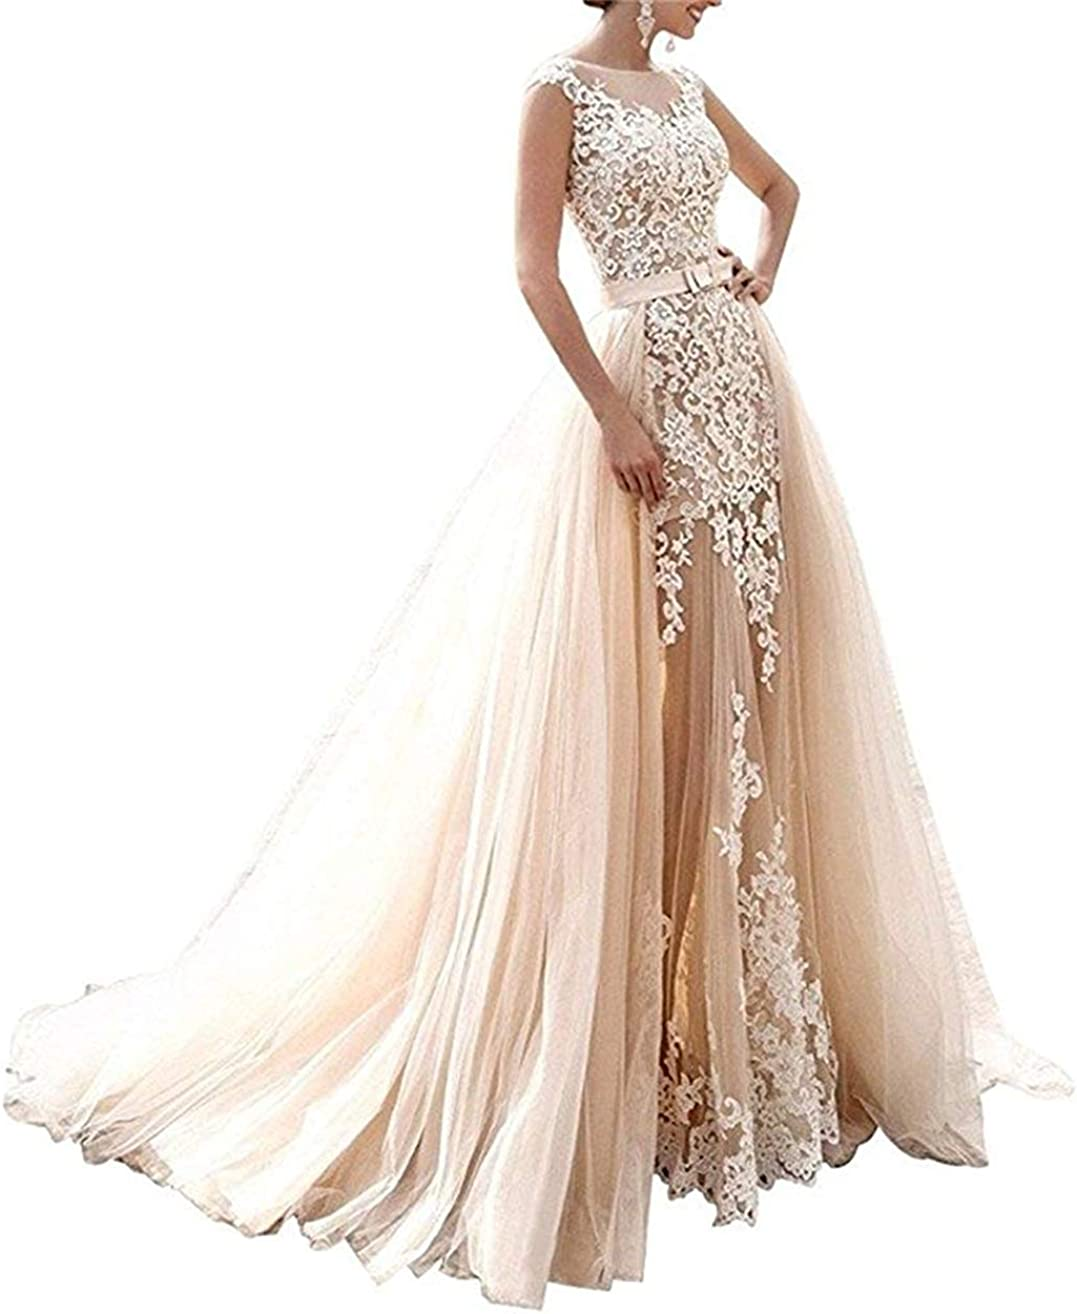 CharmingBridal Womens Short Wedding Dresses Tulle Lace Bridal Gowns